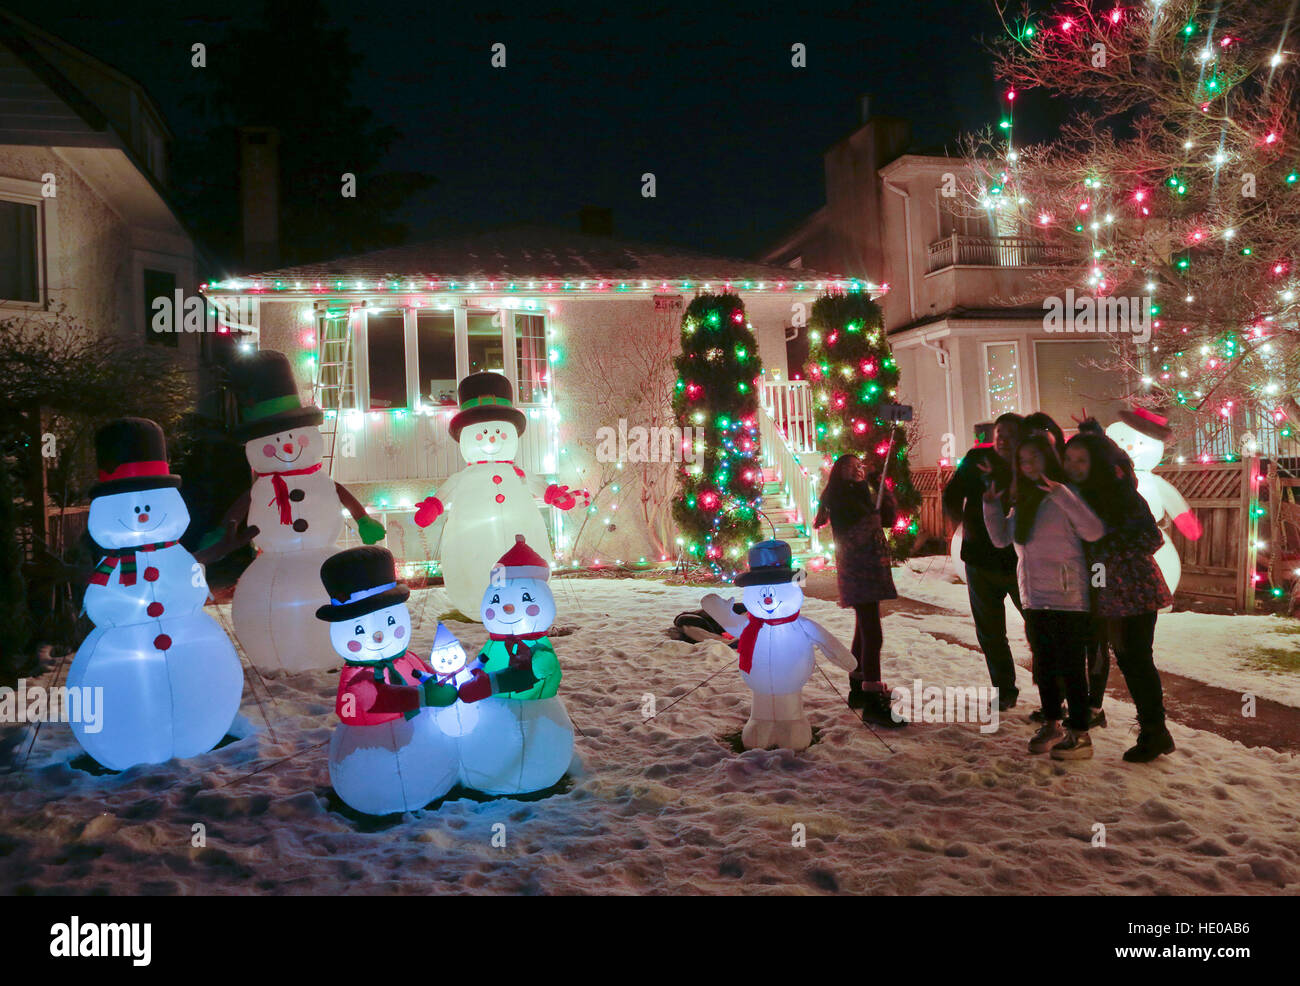 Vancouver, Canada. 16th Dec, 2016. Residents visit the decorated Christmas house at a street in Vancouver, Canada, - Stock Image